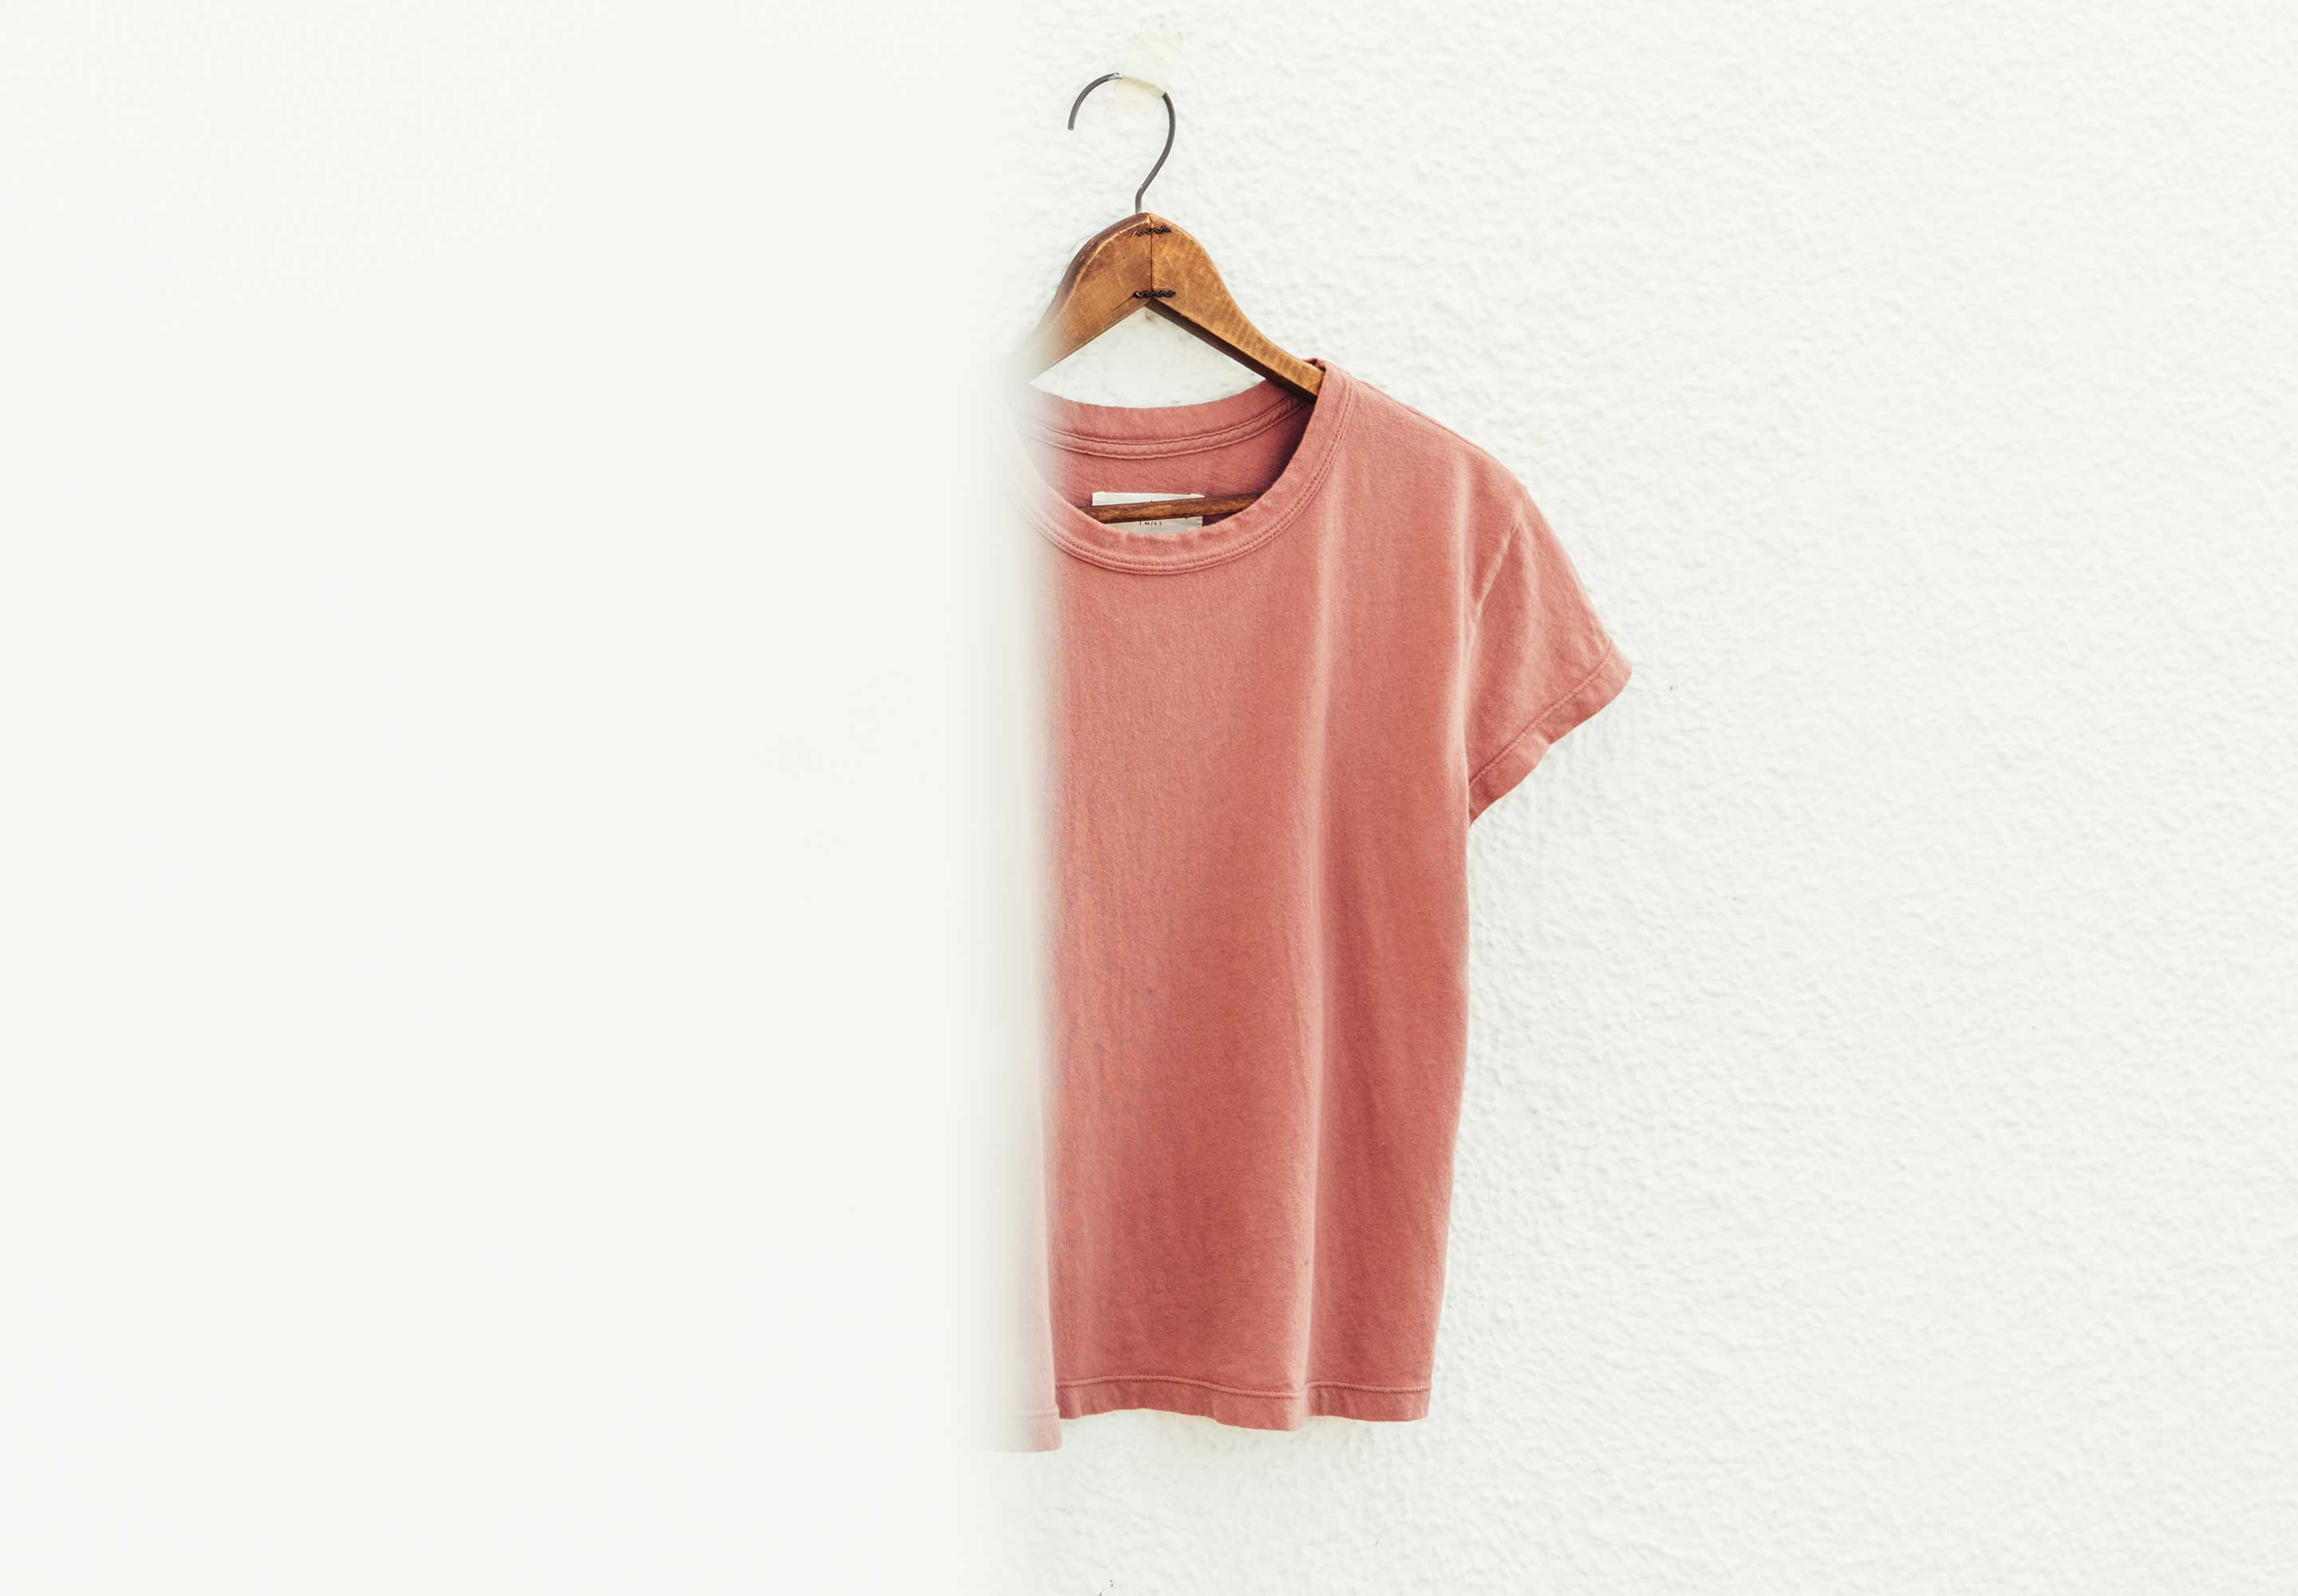 imogene + willie - the drop tee in desert rose